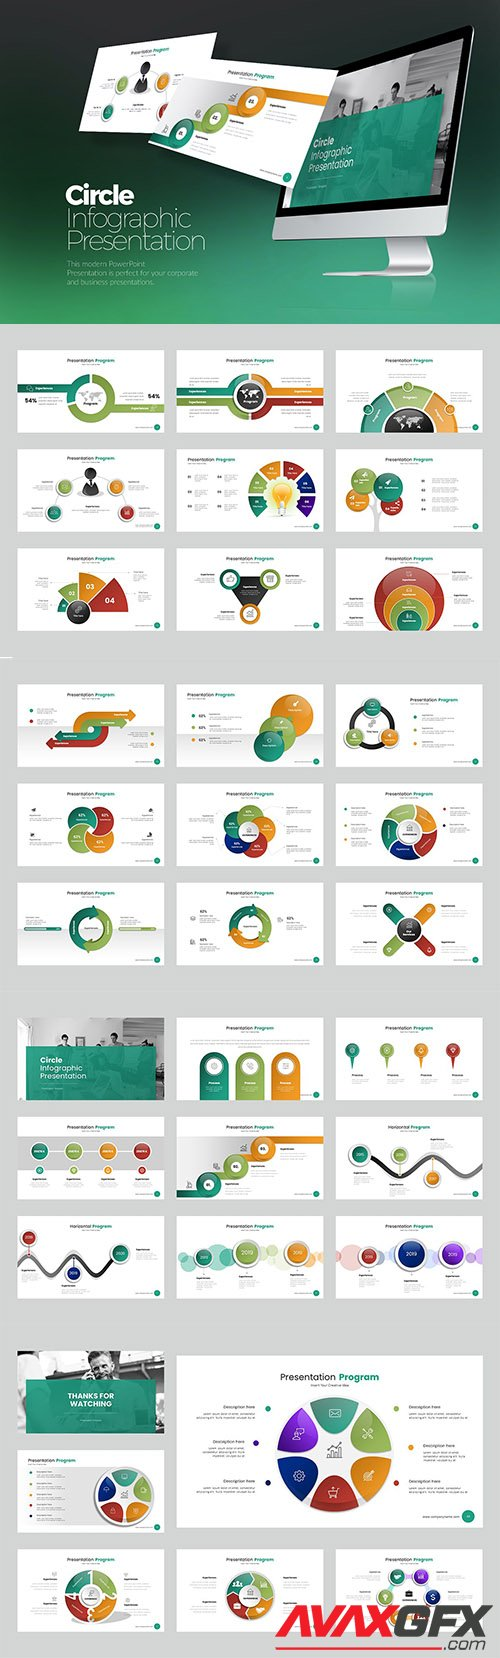 Circle Infographic PowerPoint, Keynote, Google Slides